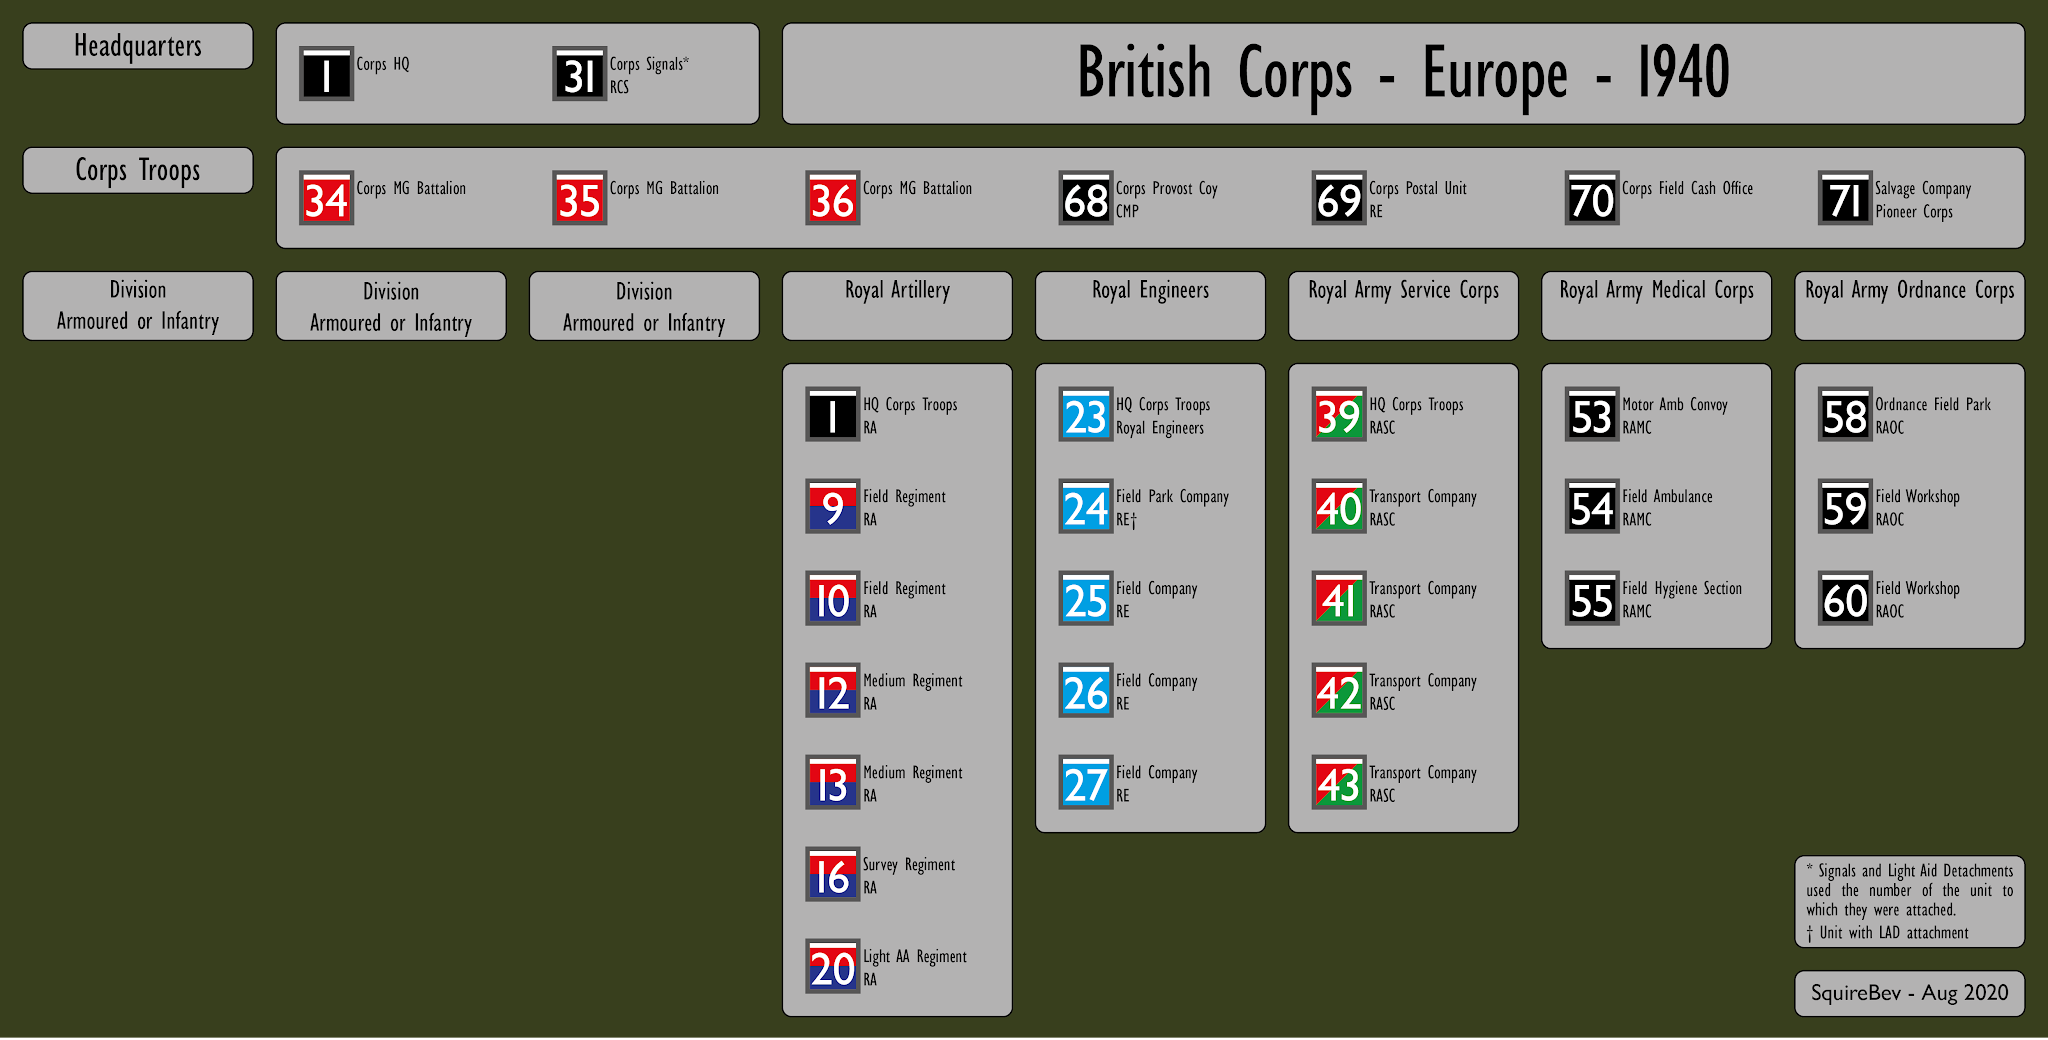 UK+-+Europe+-+Corps+-+1940-01.png